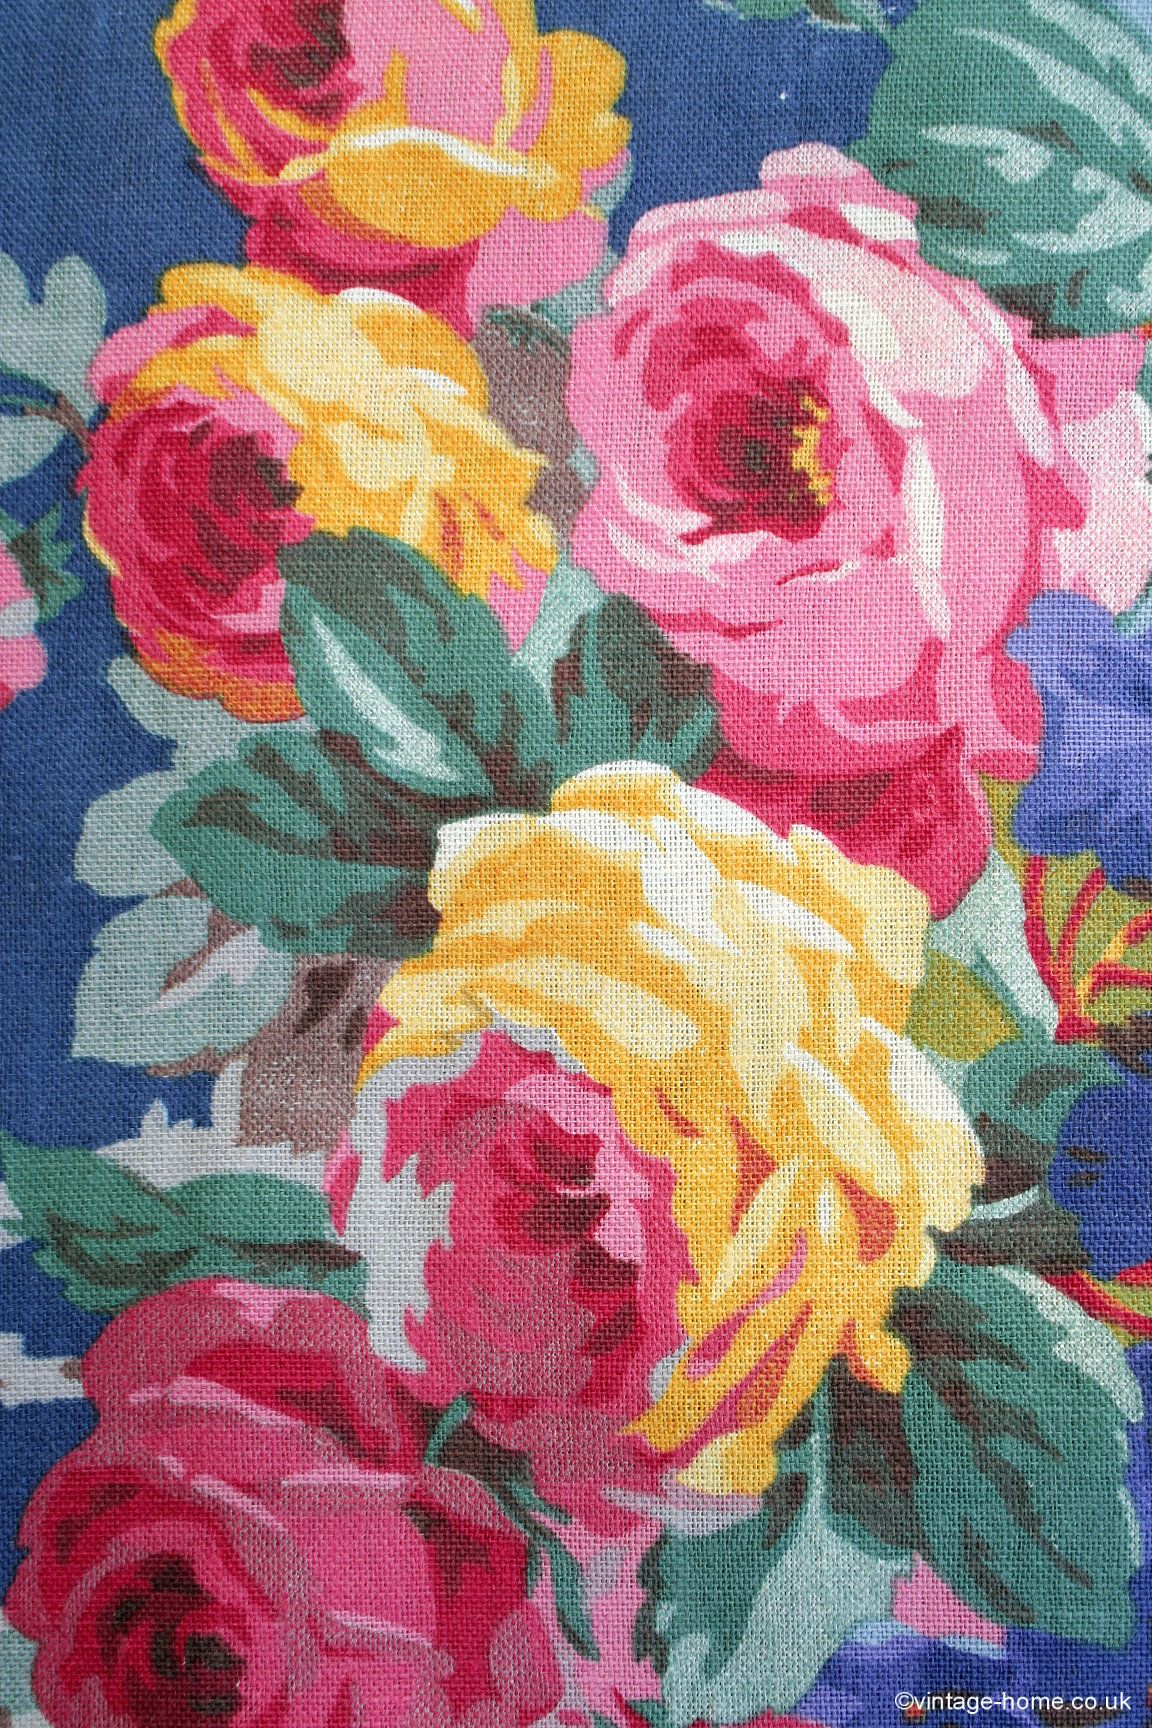 A superb 1930s Linen Fabric adorned with Spectacular Roses: www ...